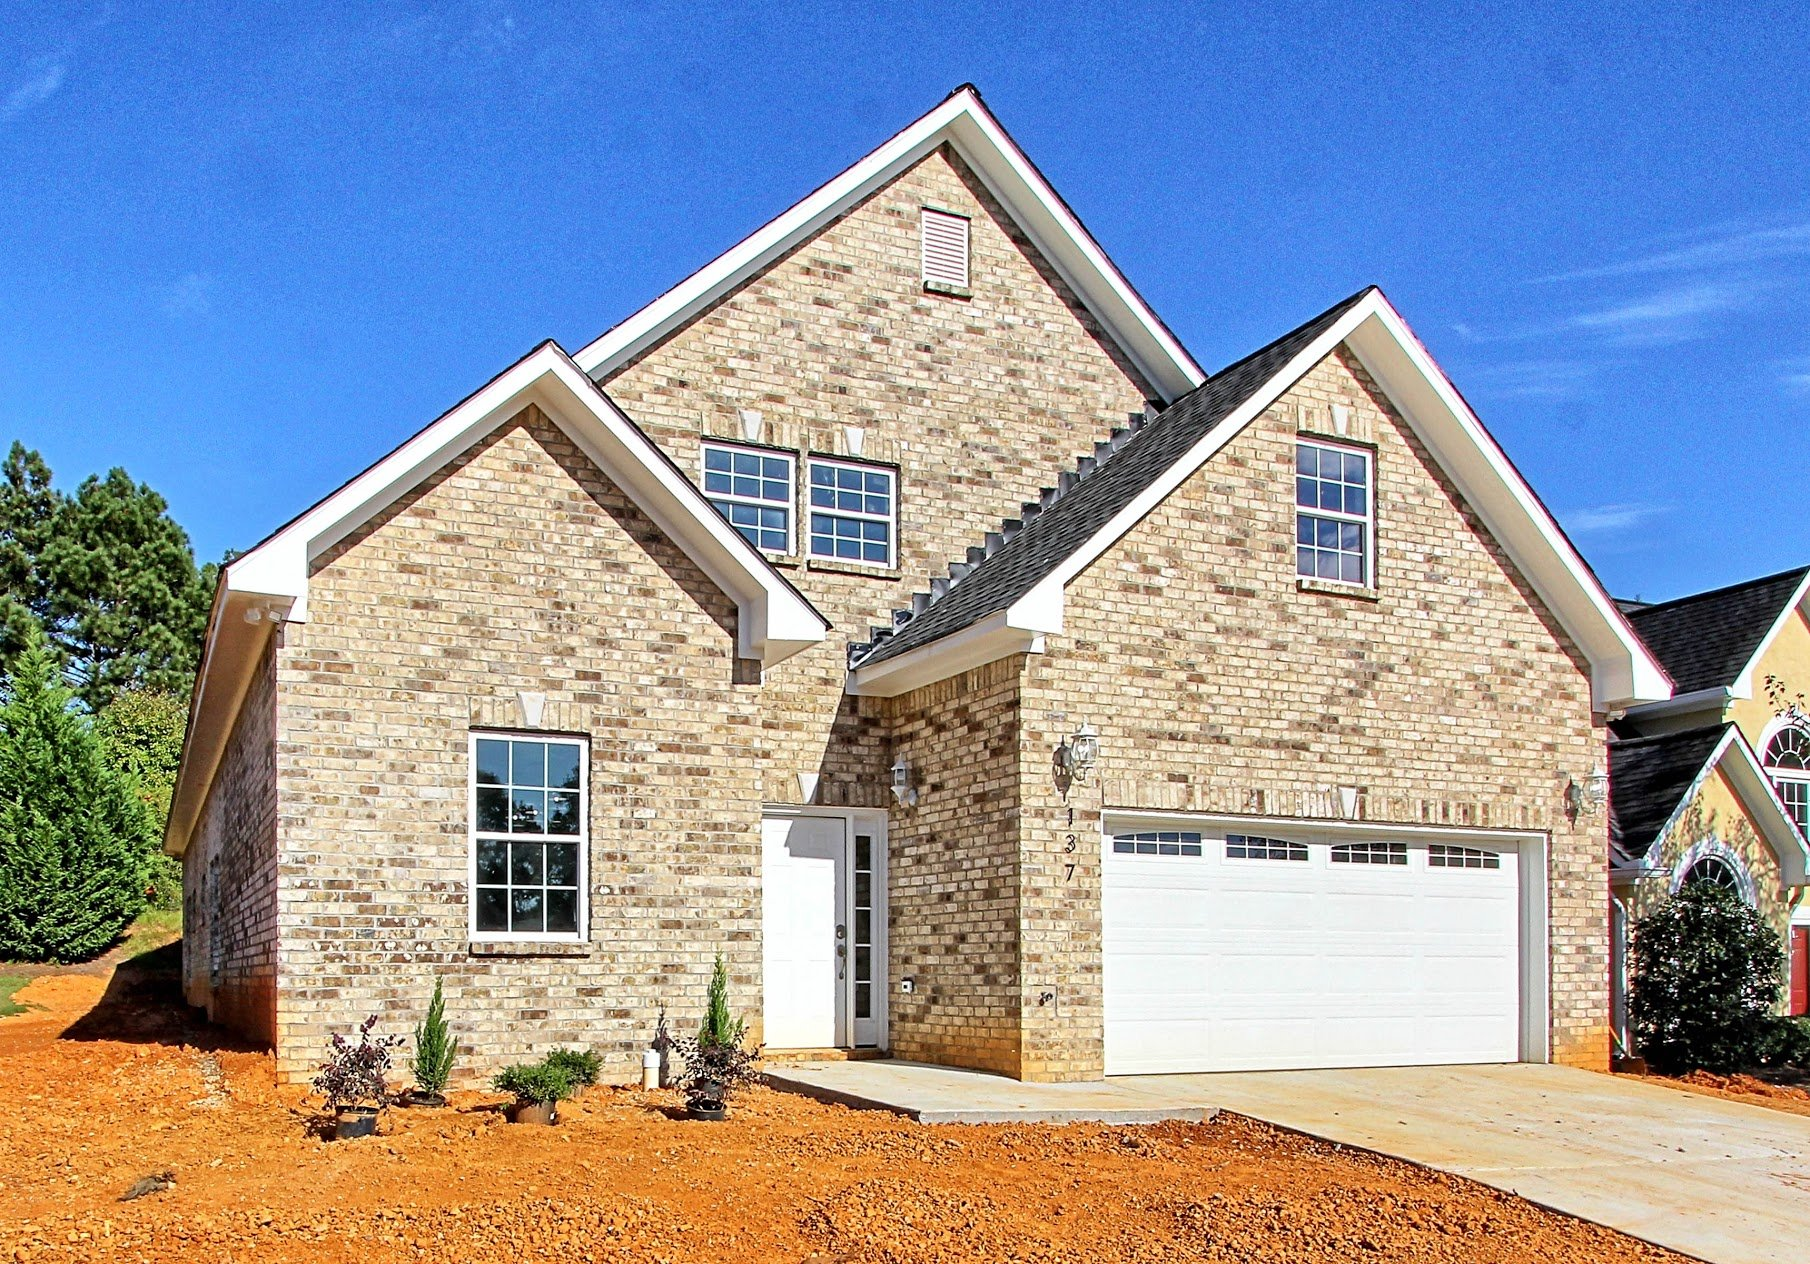 Building new houses in Georgia is advantageous not only in major cities like Atlanta, but also in suburbs throughout the state such as Stockbridge.